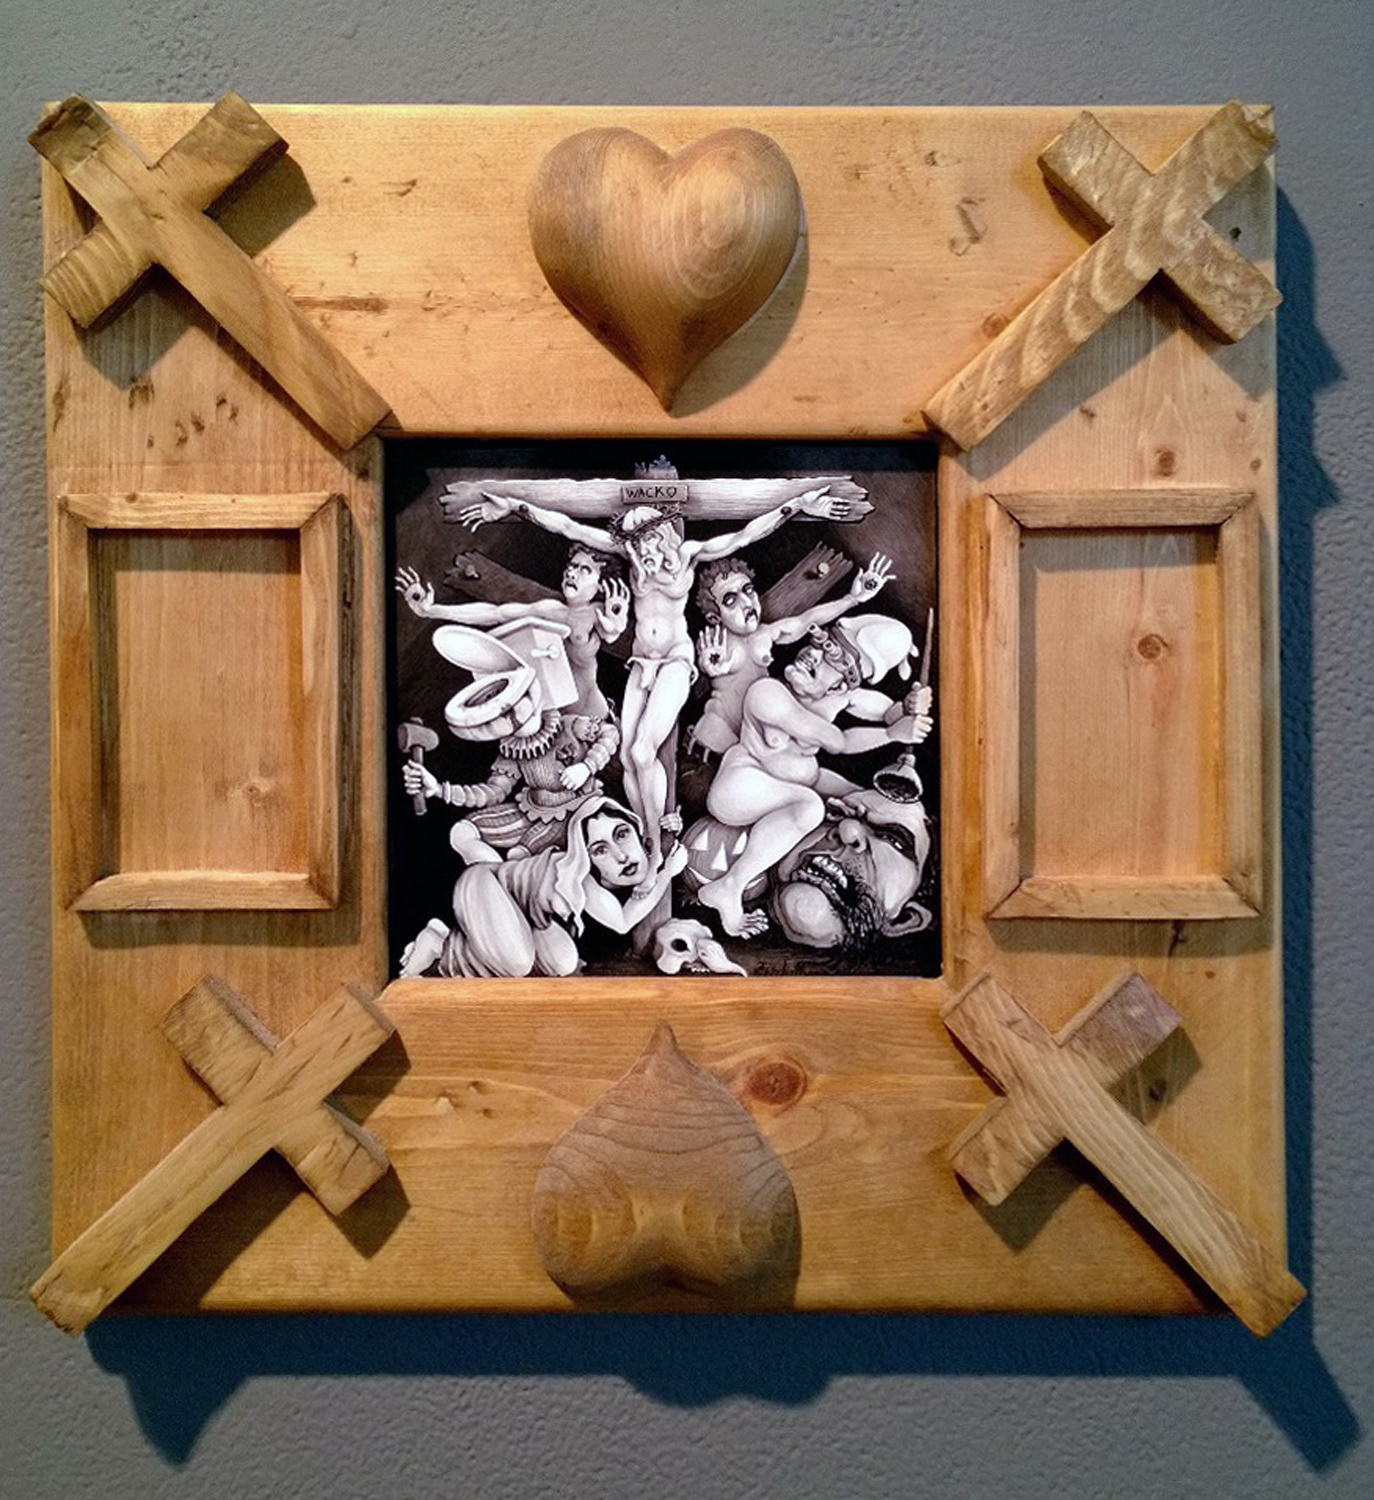 Brushed ink & pyrography, 6 x 6 in. (in larger hand carved frame) $550.00 Sold